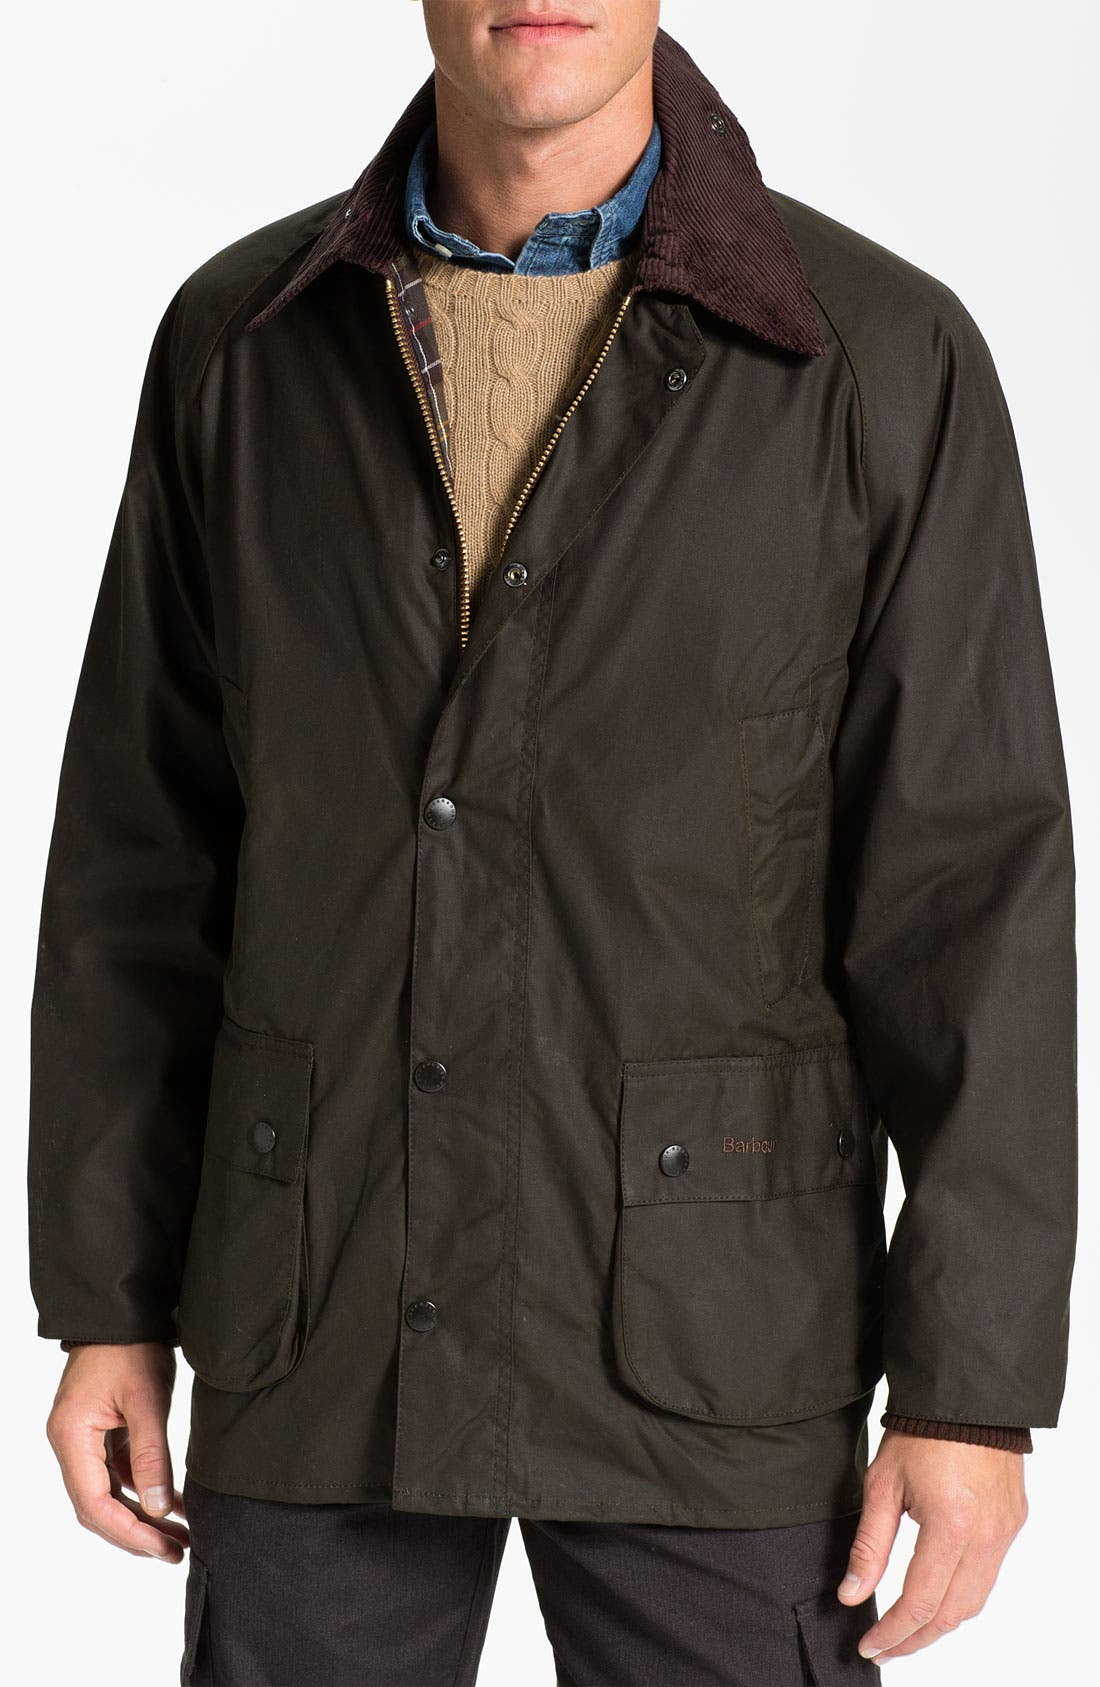 Barbour 'Bedale' Relaxed Fit Waterproof Waxed Cotton Jacket